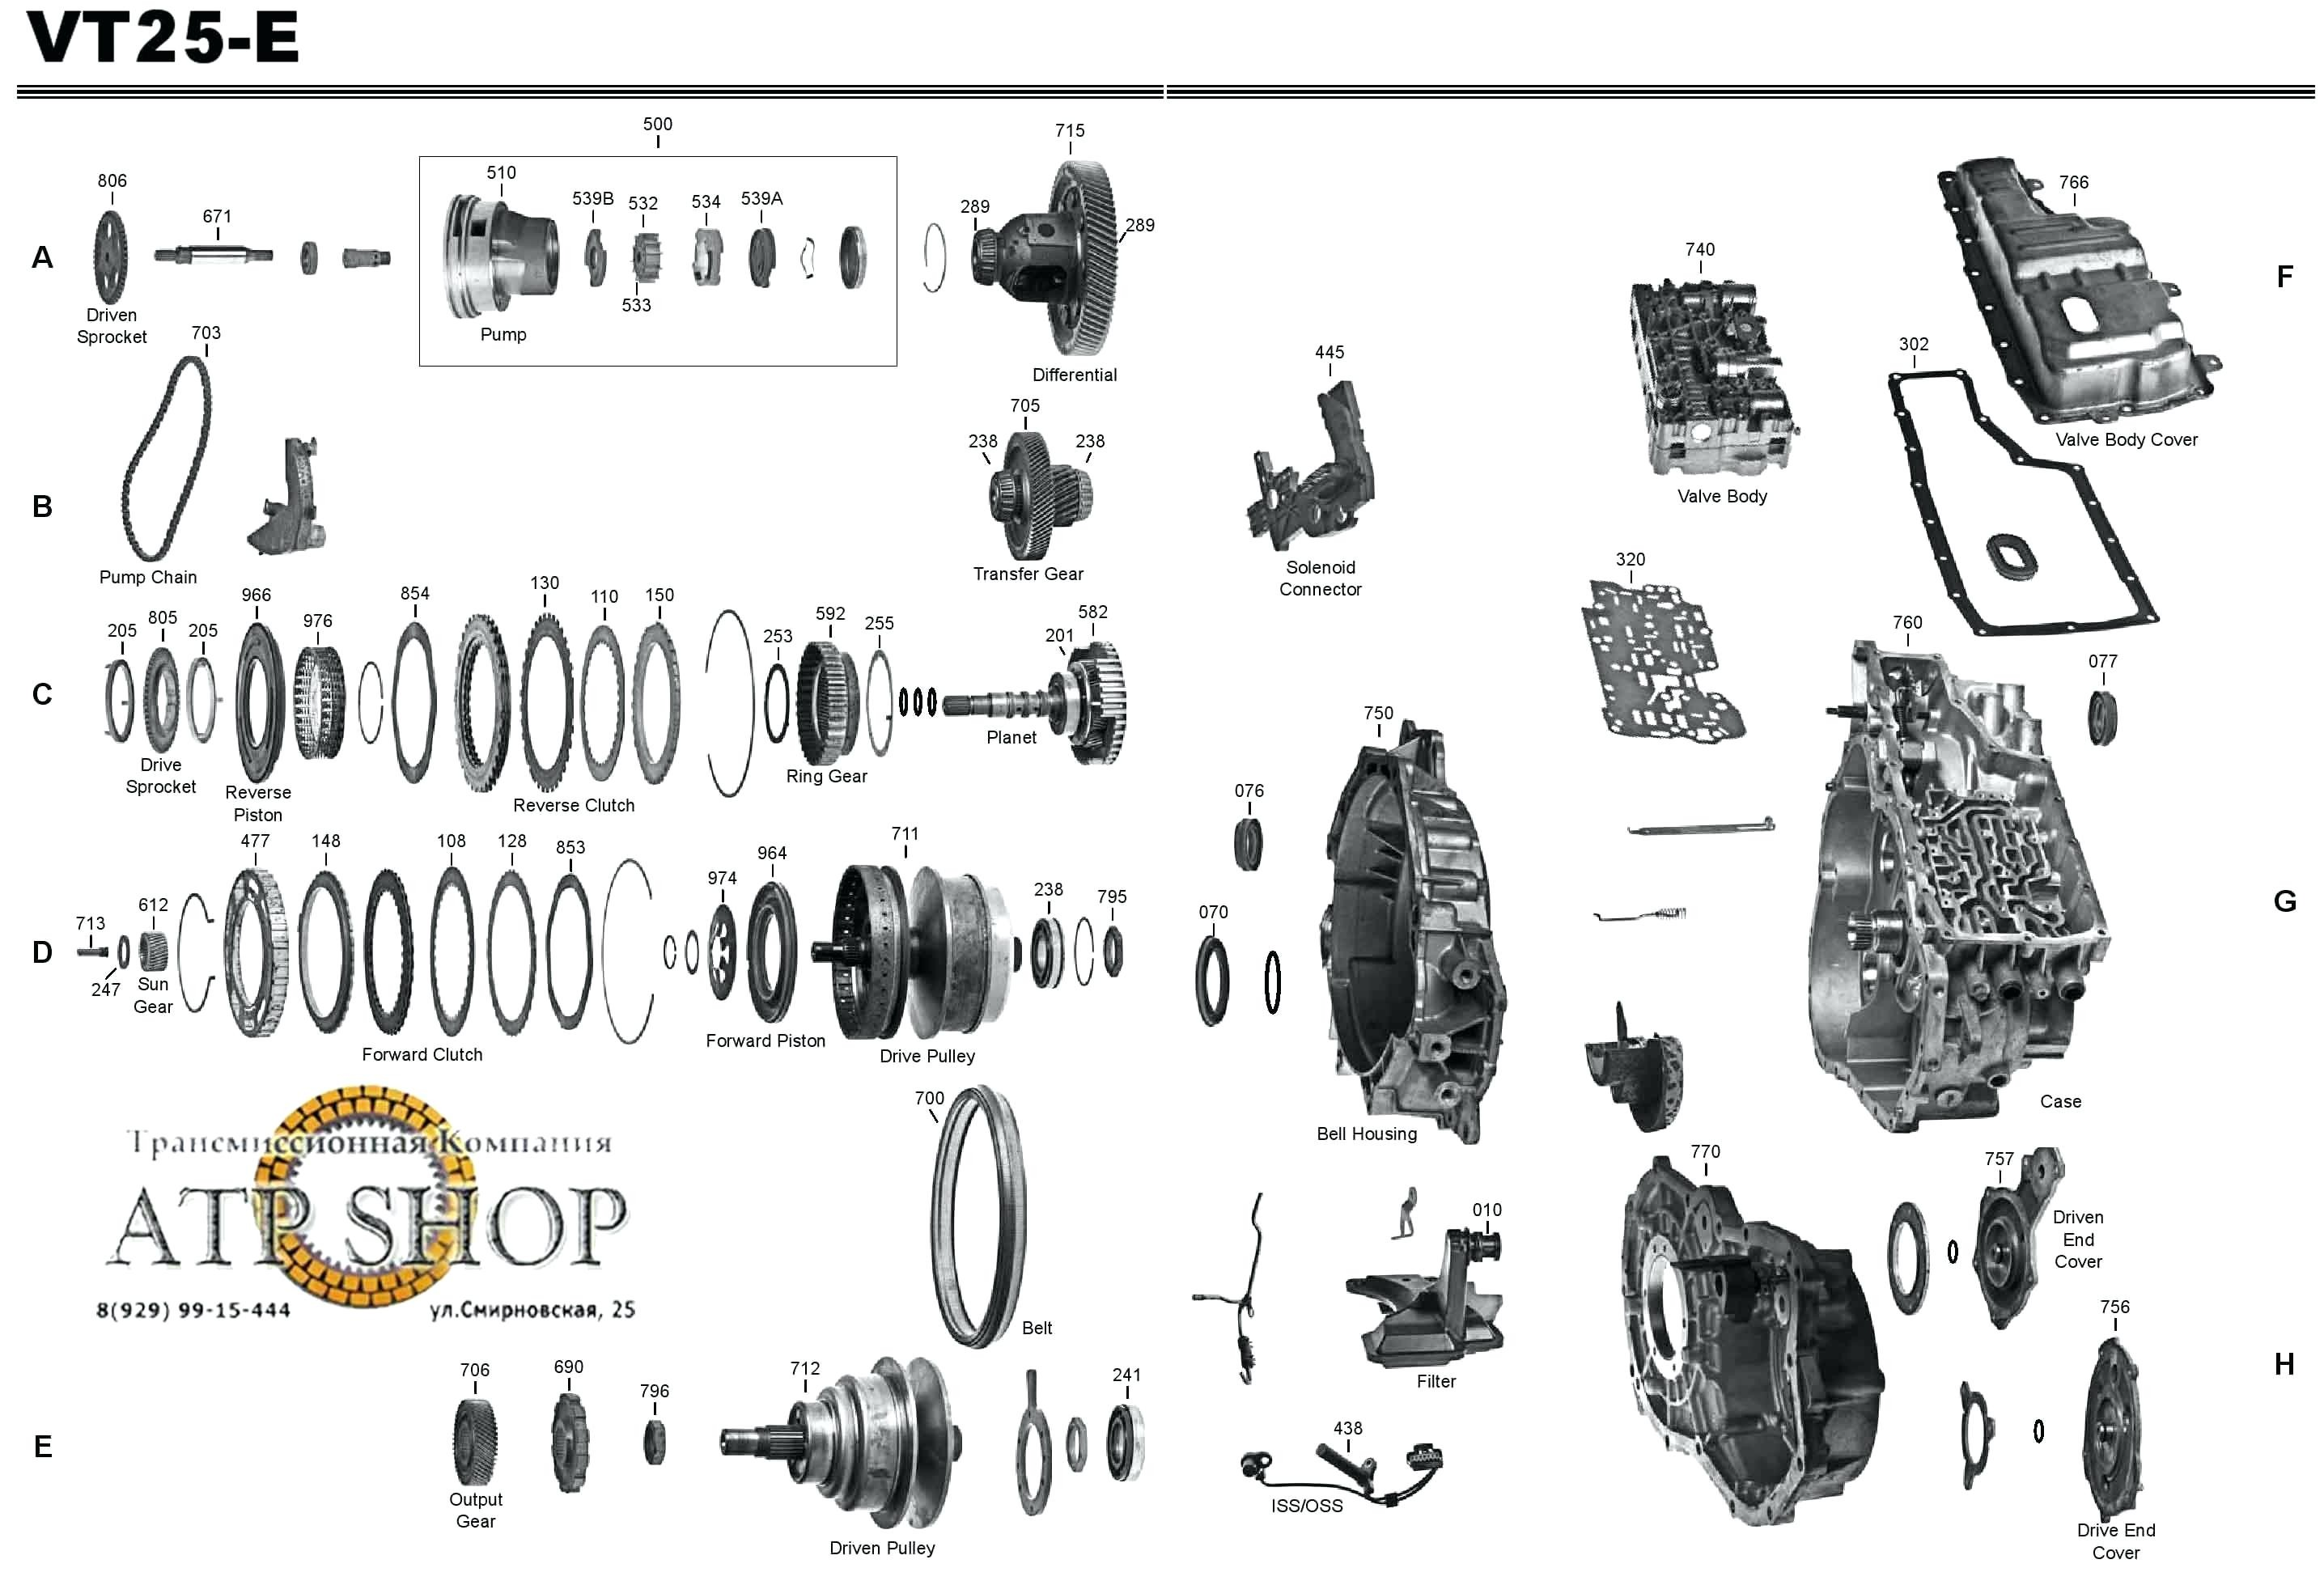 Saturn Sl2 Engine Diagram Saturn Sl2 Engine Diagram 2001 Sl Wiring and Fuse Box Fuel Filter Of Saturn Sl2 Engine Diagram